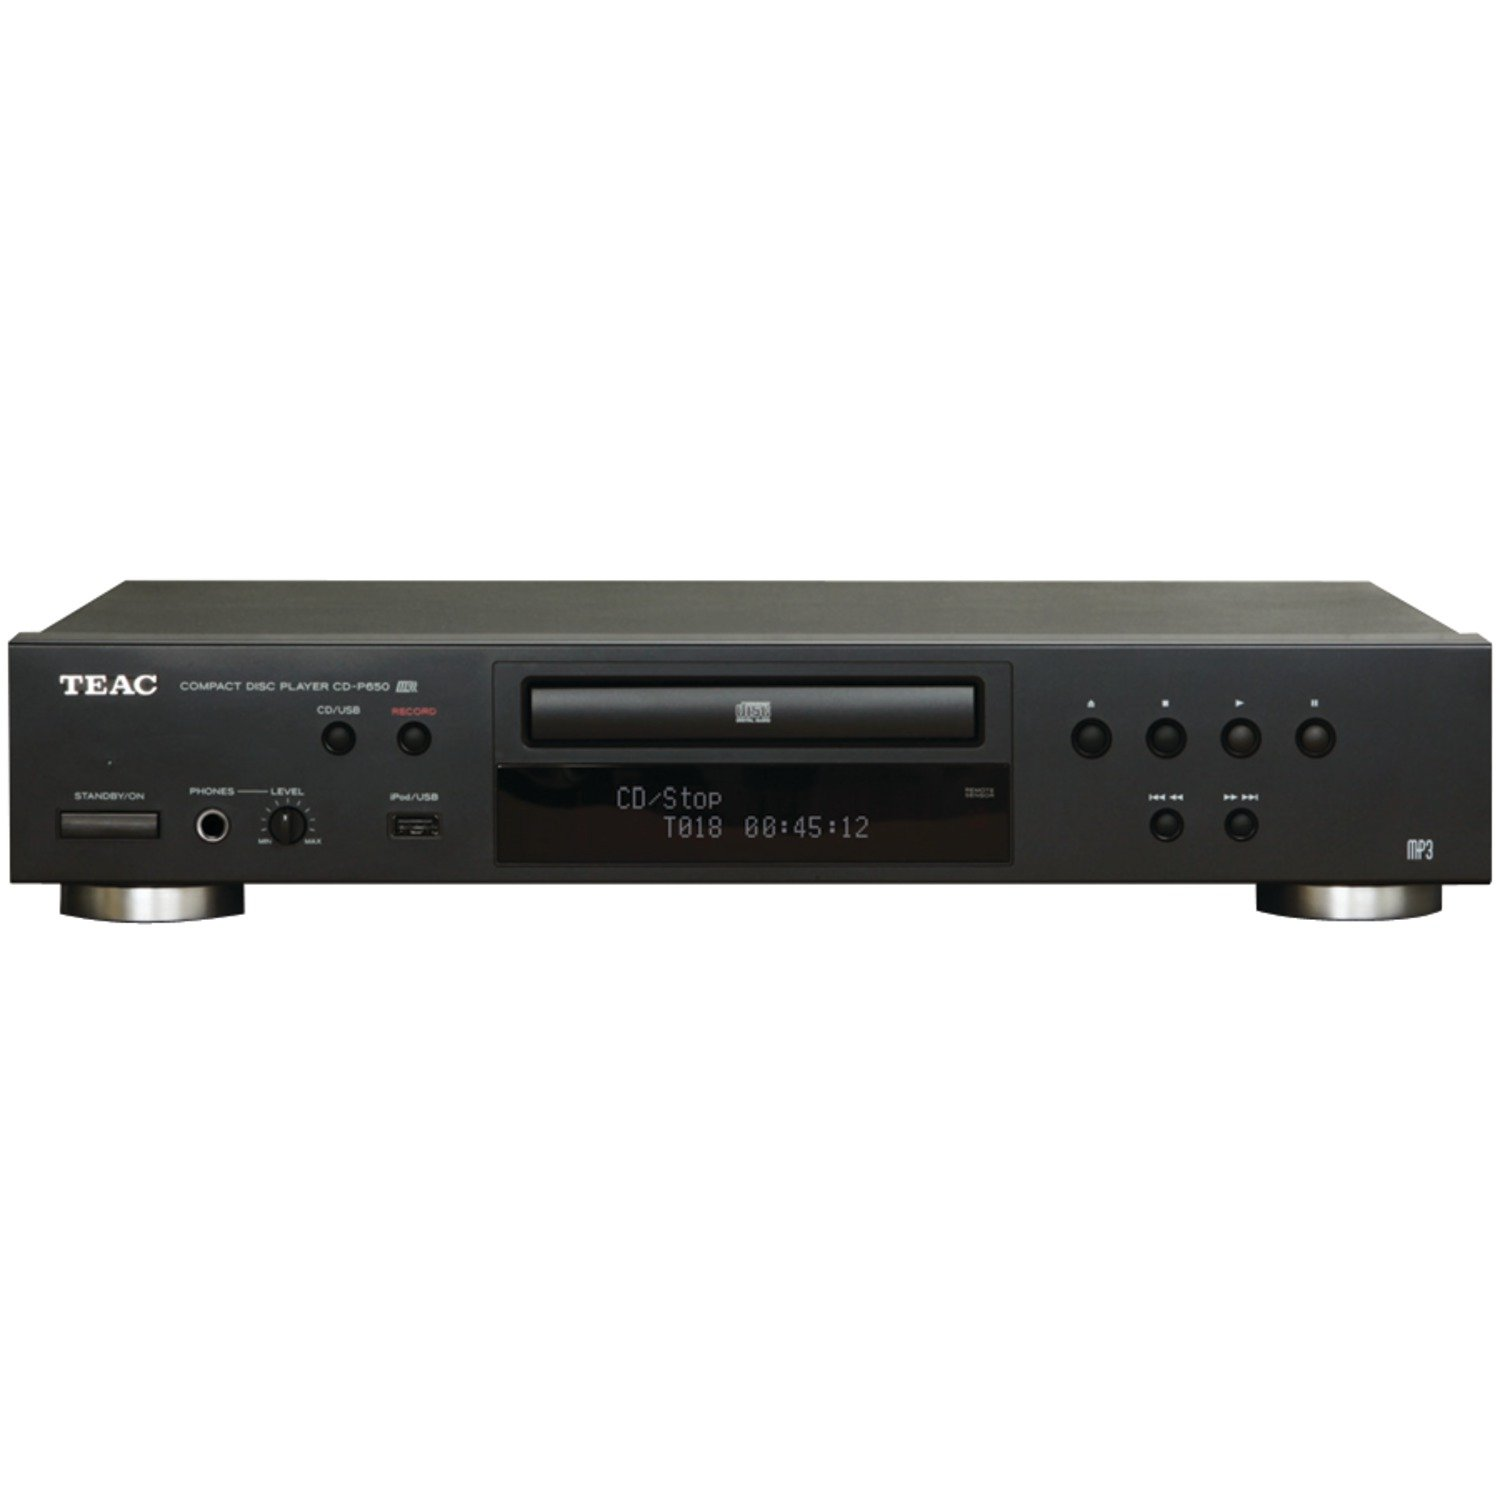 TEAC CD-P650 CD and USB Recorder with Remote (Black) CD-P650-B